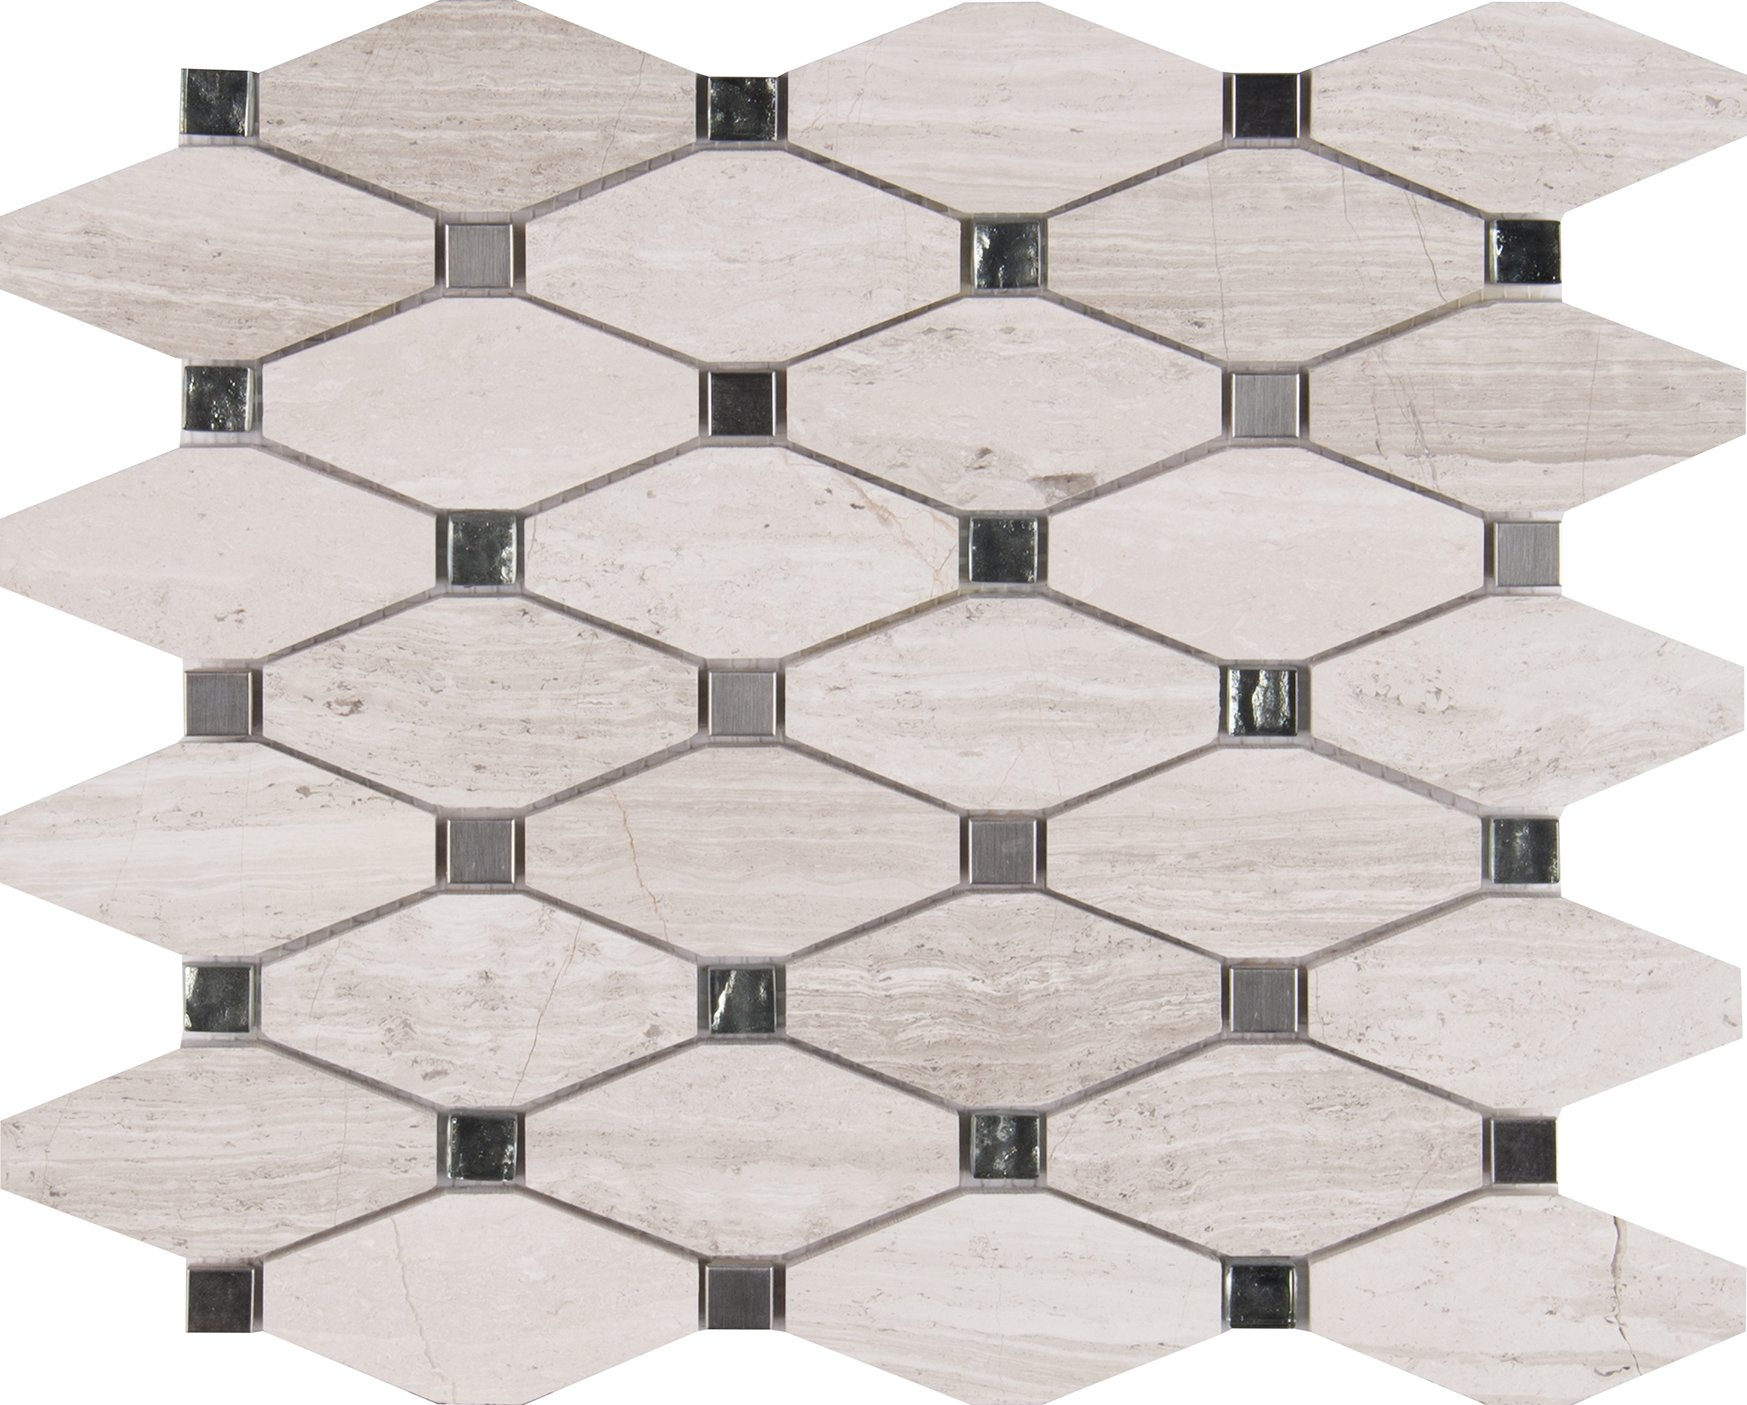 M S International Bayview Elongated Octagon 11.81 In. X 13.4 In. X 10 mm Glass Metal Mesh-Mounted Mosaic Tile, (11 sq. ft., 10 pieces per case)